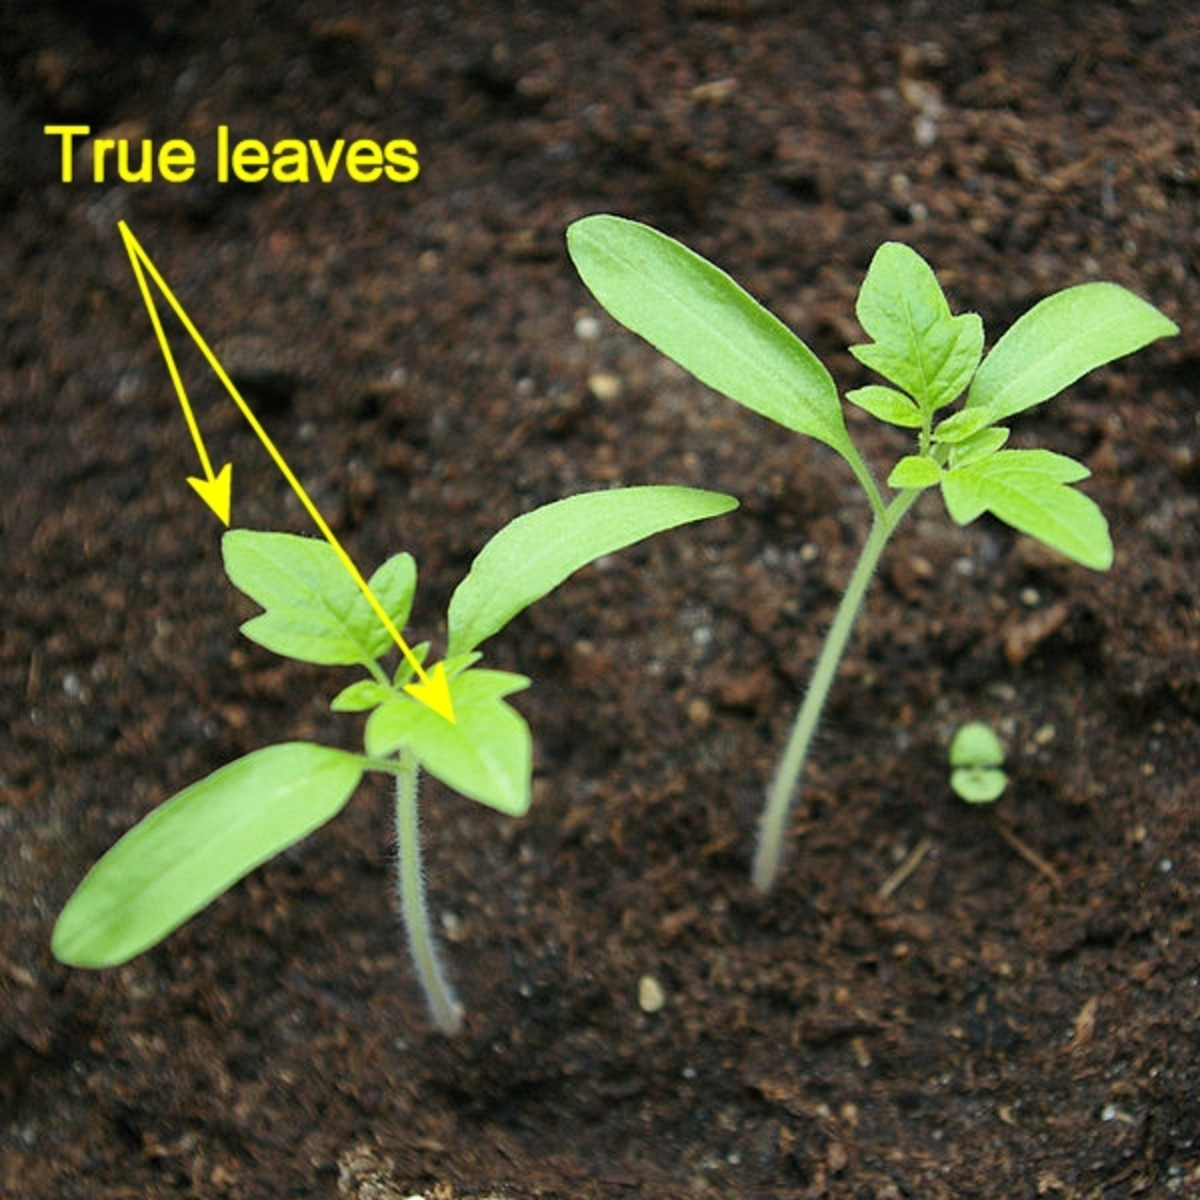 True leaves